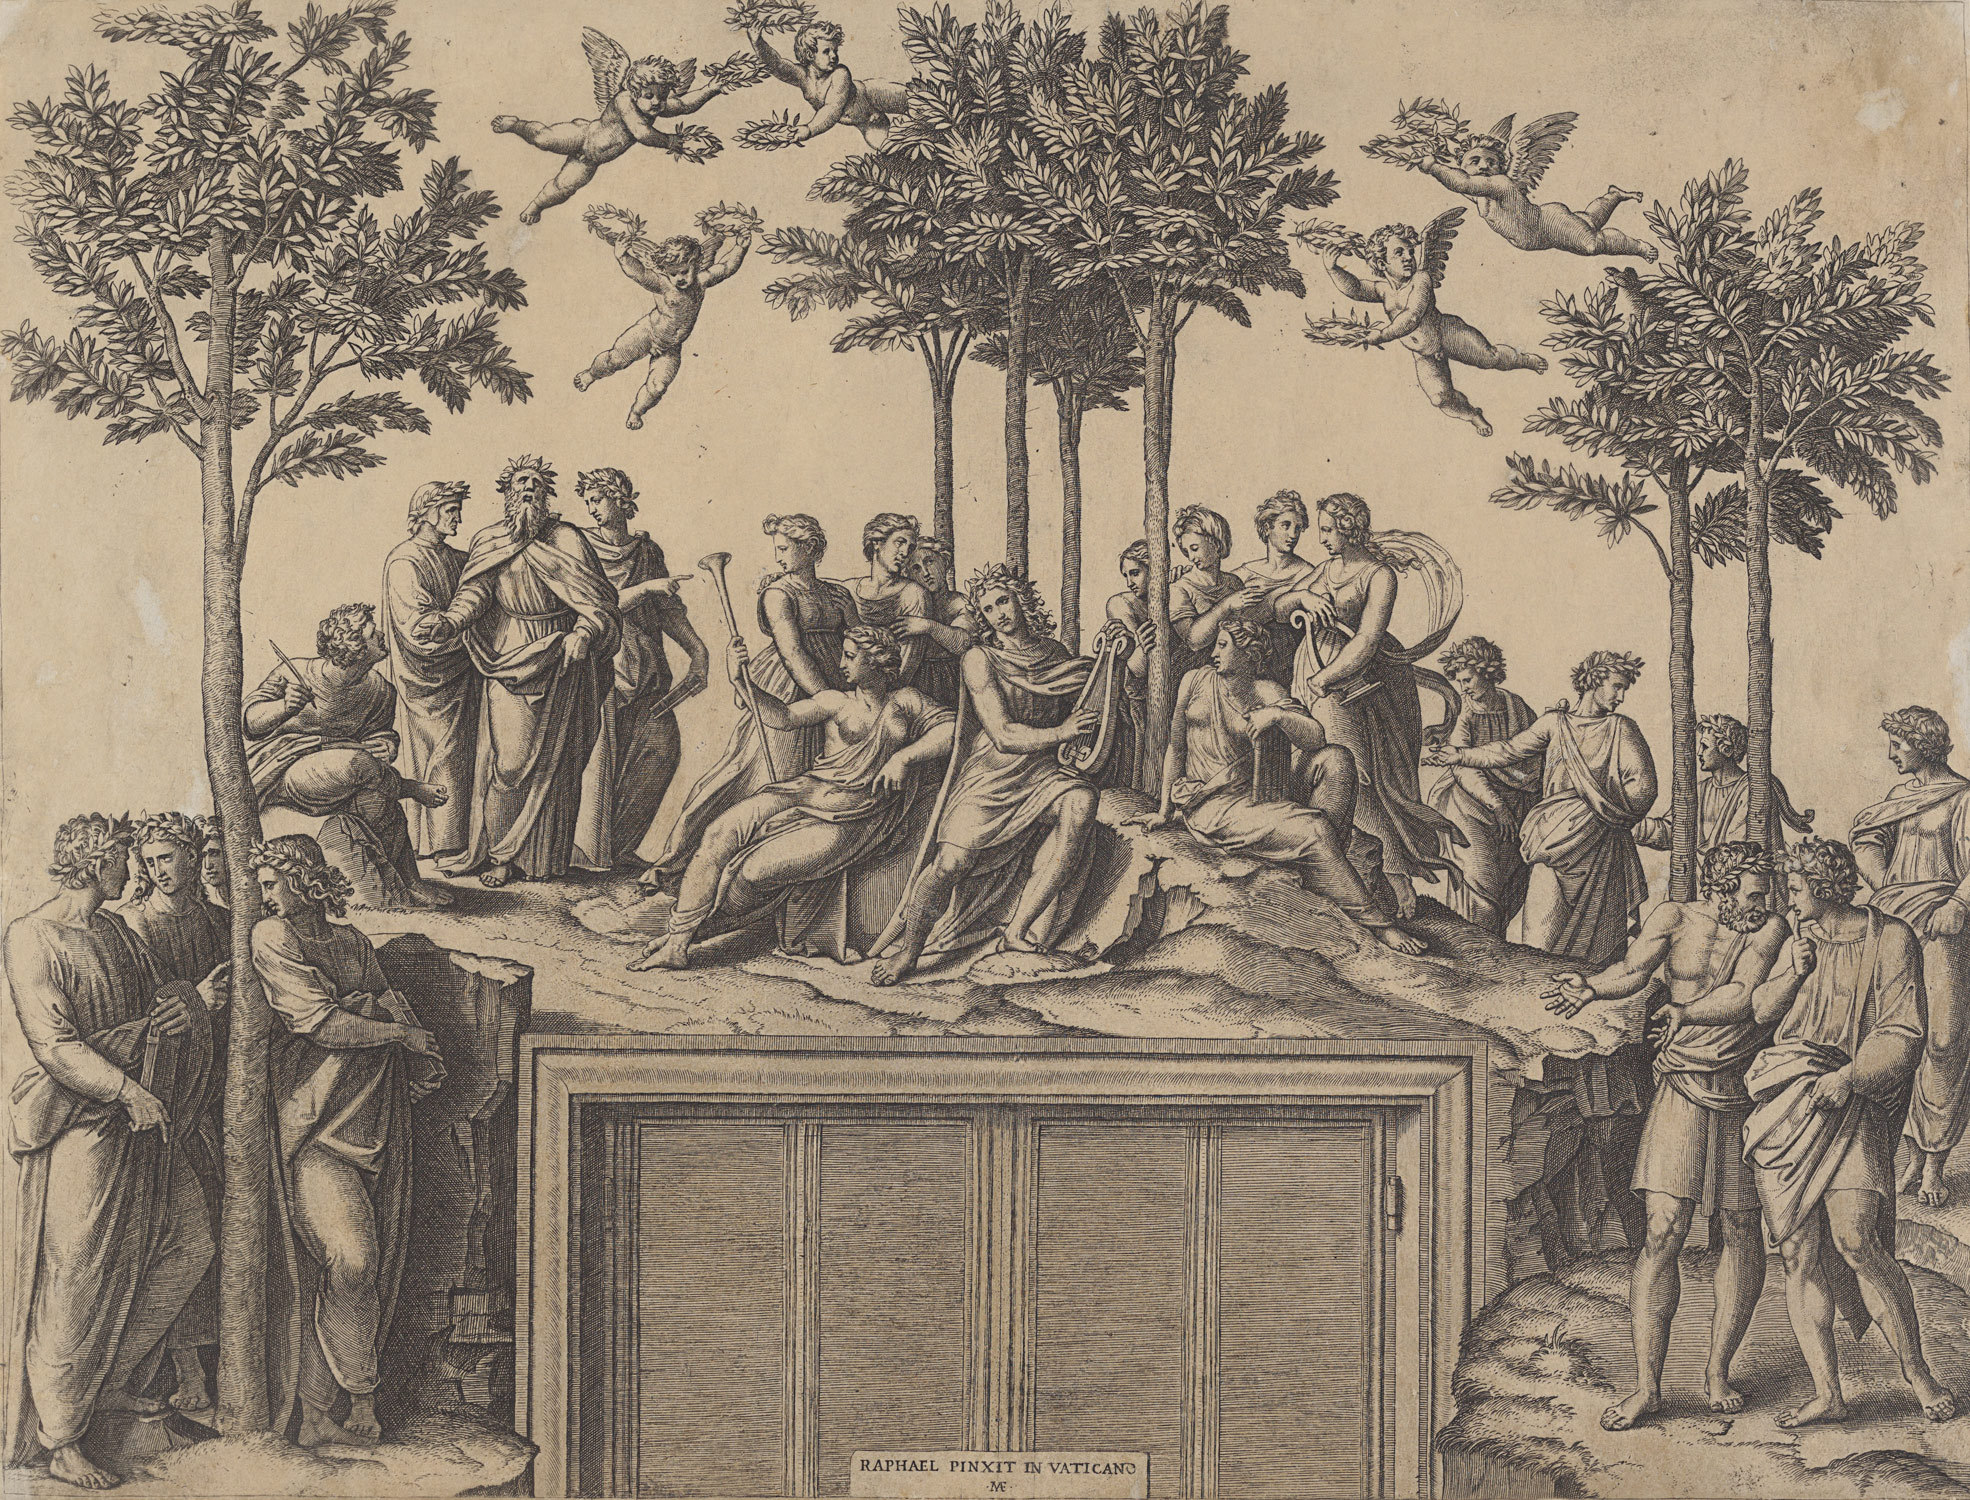 Apollo sitting on Parnassus surrounded by the muses and famous poets